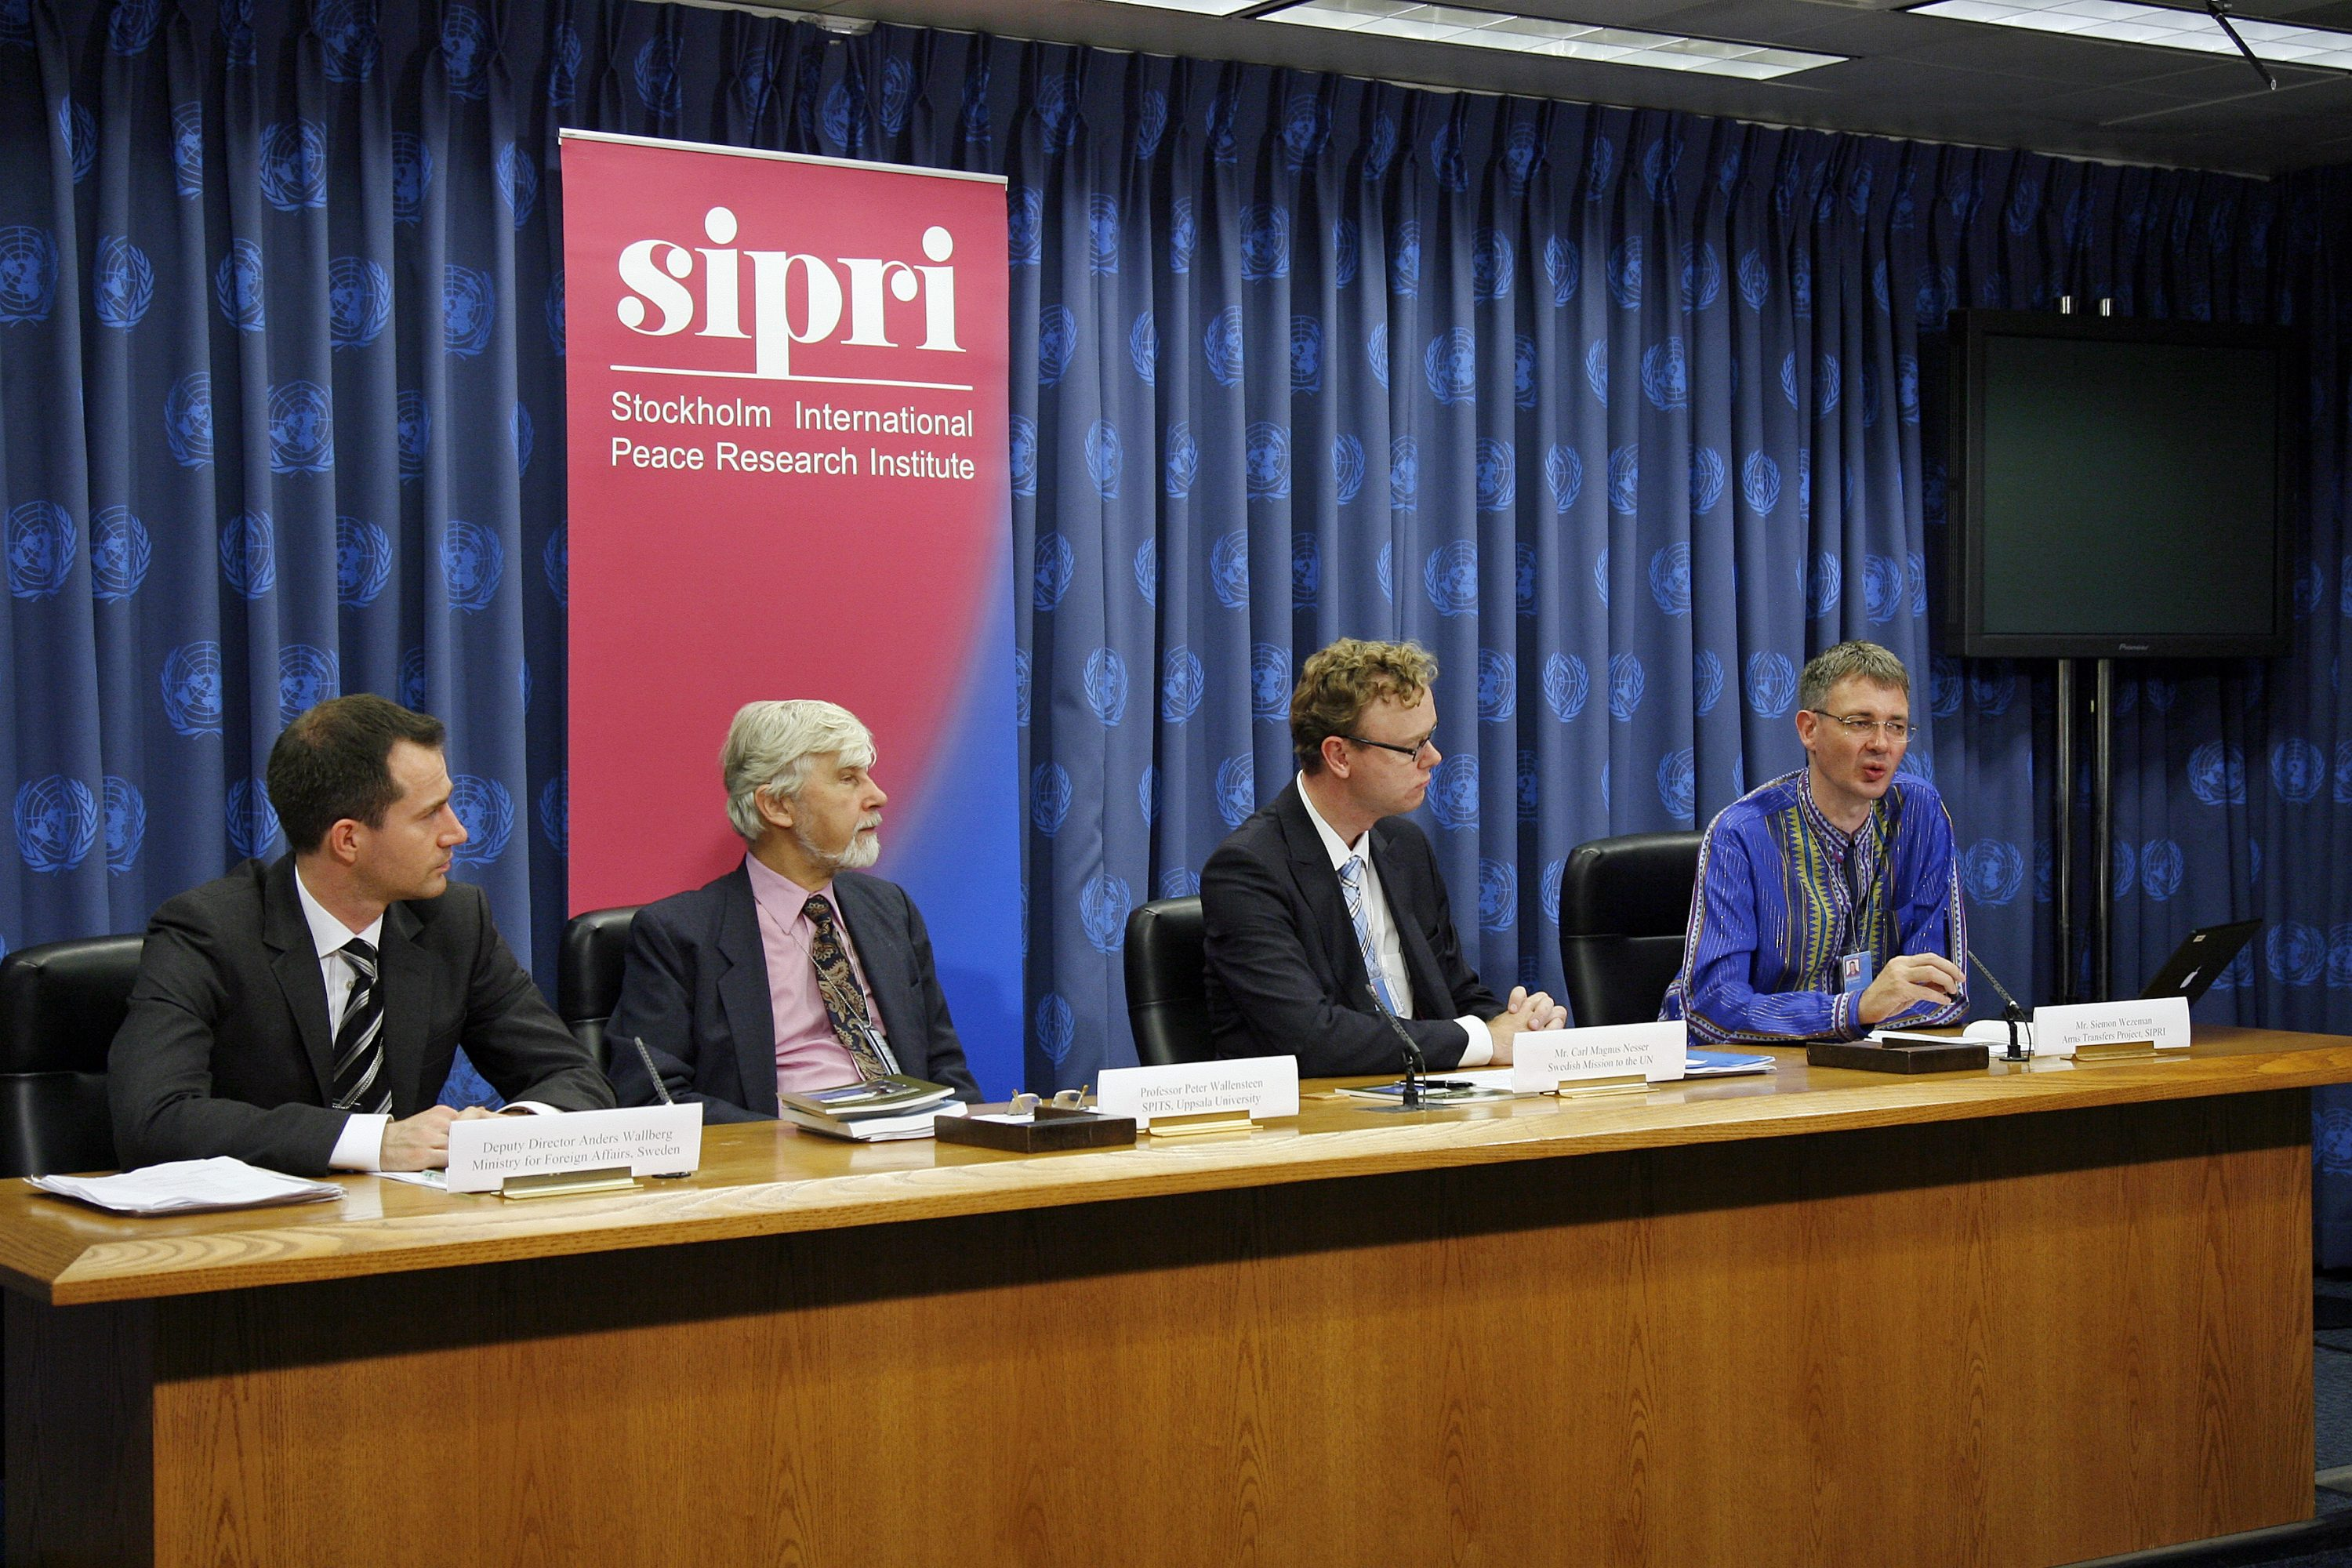 "Press Conference: Following the launch (at 1:15 pm in Conference Room 6) of the report ""United nations Arms Embargoes: Their Impact on Arms Flows and Target Behaviour"", sponsored by the Permanent Mission of Sweden to the United Nations in cooperation with the Arms Transfers Project of the Stockholm International Peace Research Institute (SIPRI) and the Special Programme on the Implementation of Targeted Sanctions (SPITS) of the Department of Peace Conflict Research, Uppsala University. Panelists include: Peter Wallensteen, SPITS; Batees Gill, SIPRI; and Anders Wallberg of the Swedish Ministry of Foreign Affairs. The moderator will be Carl Mangus Nesser, Permanent Mission of Sweden."